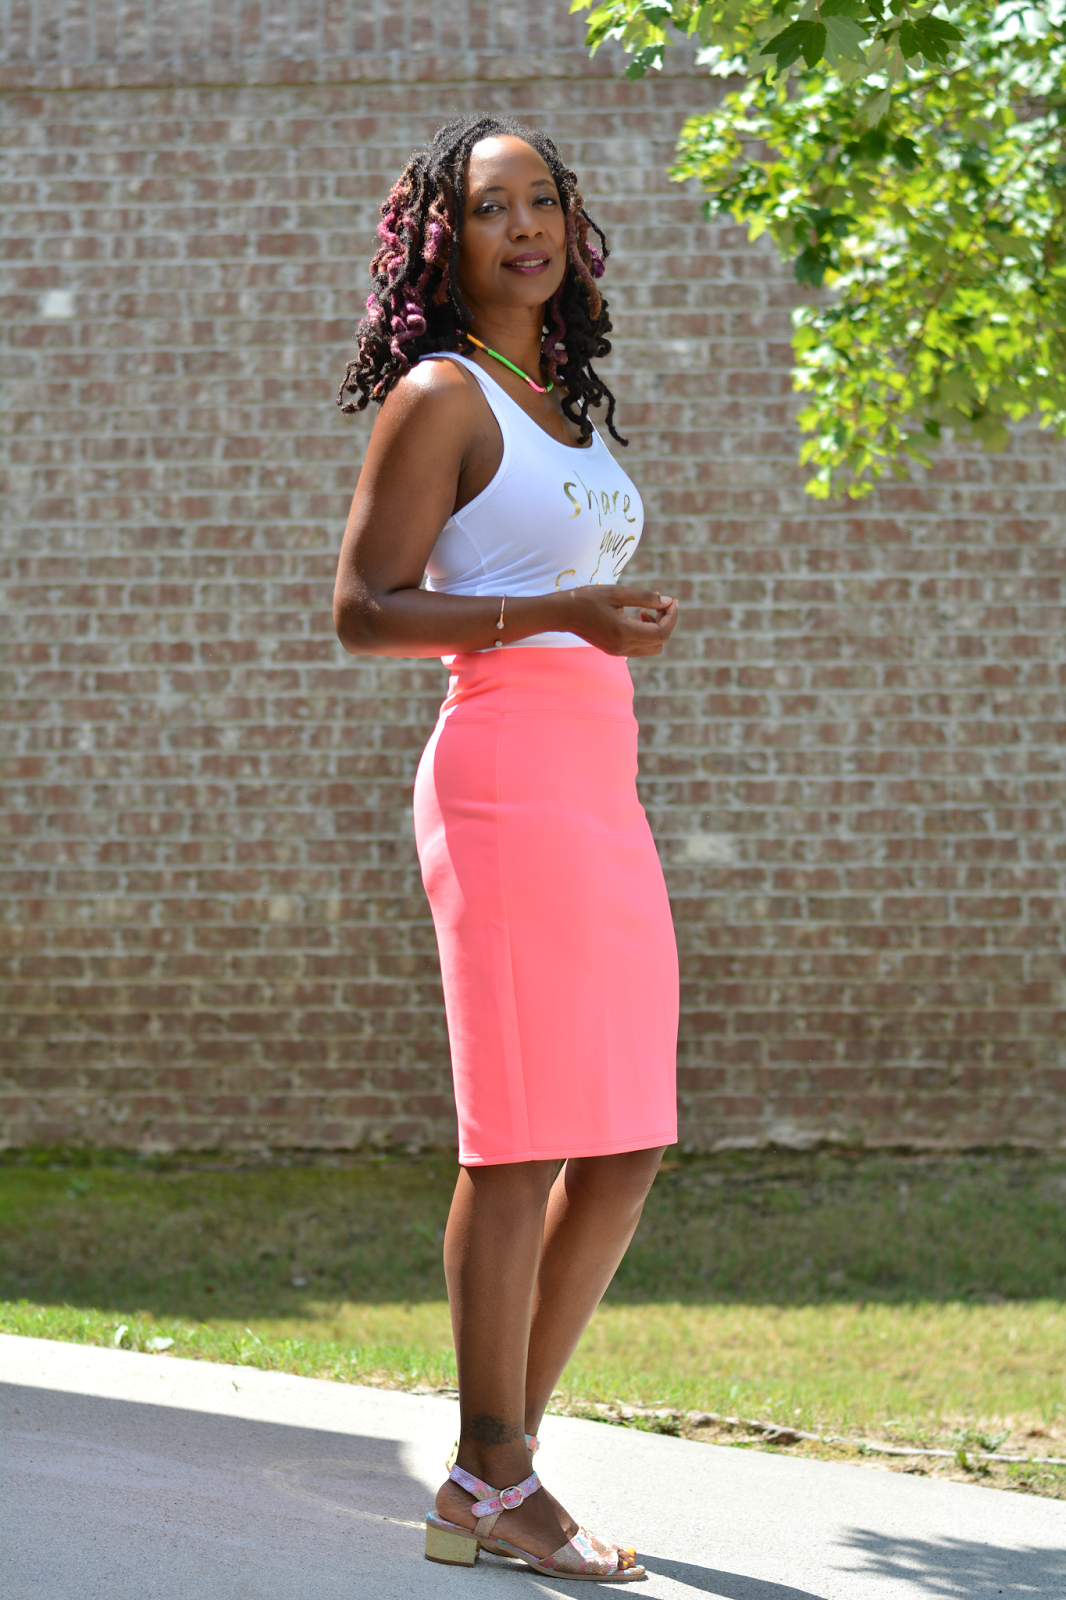 pencil skirt for the casual mom wardrobe, wardrobe basics, mom style, pink tube skirt with graphic statement tee, topshop gold low chunky heel sandals, #aeriepartner, thriftanista in the city